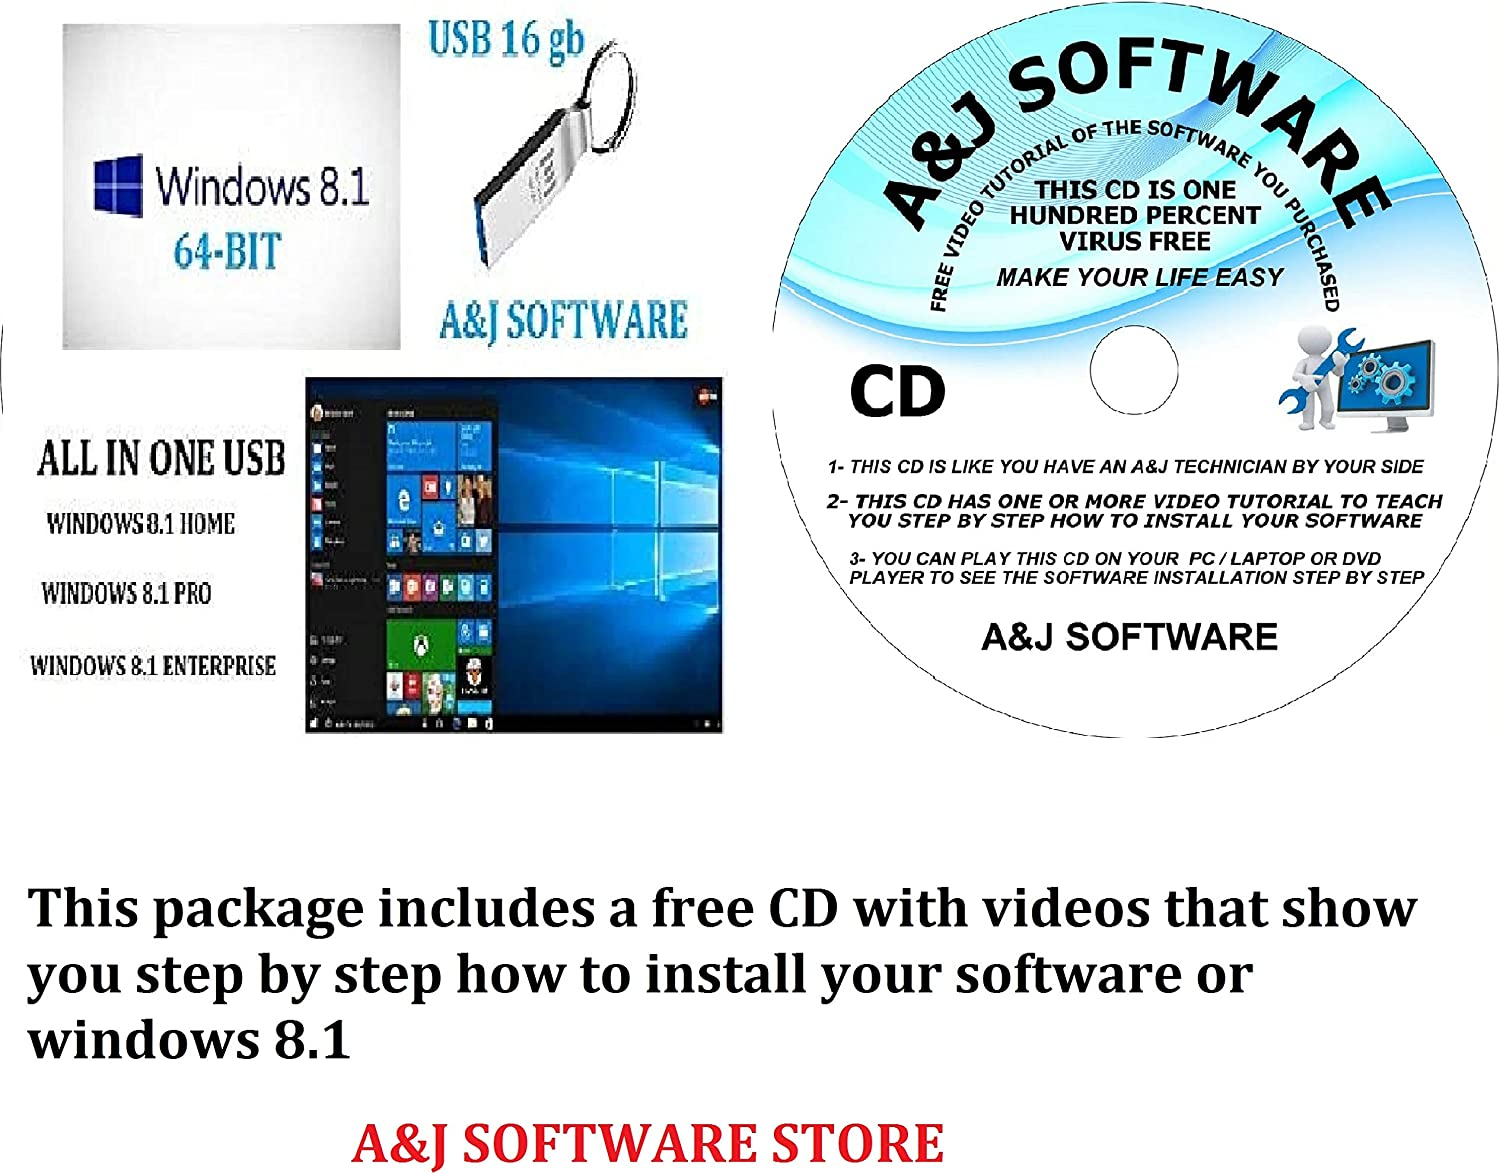 WINDOWS 8.1 Cheap mail order sales USB SUITE. 64-BIT REINSTA FIX FACTORY RECOVERY FRESH Max 51% OFF